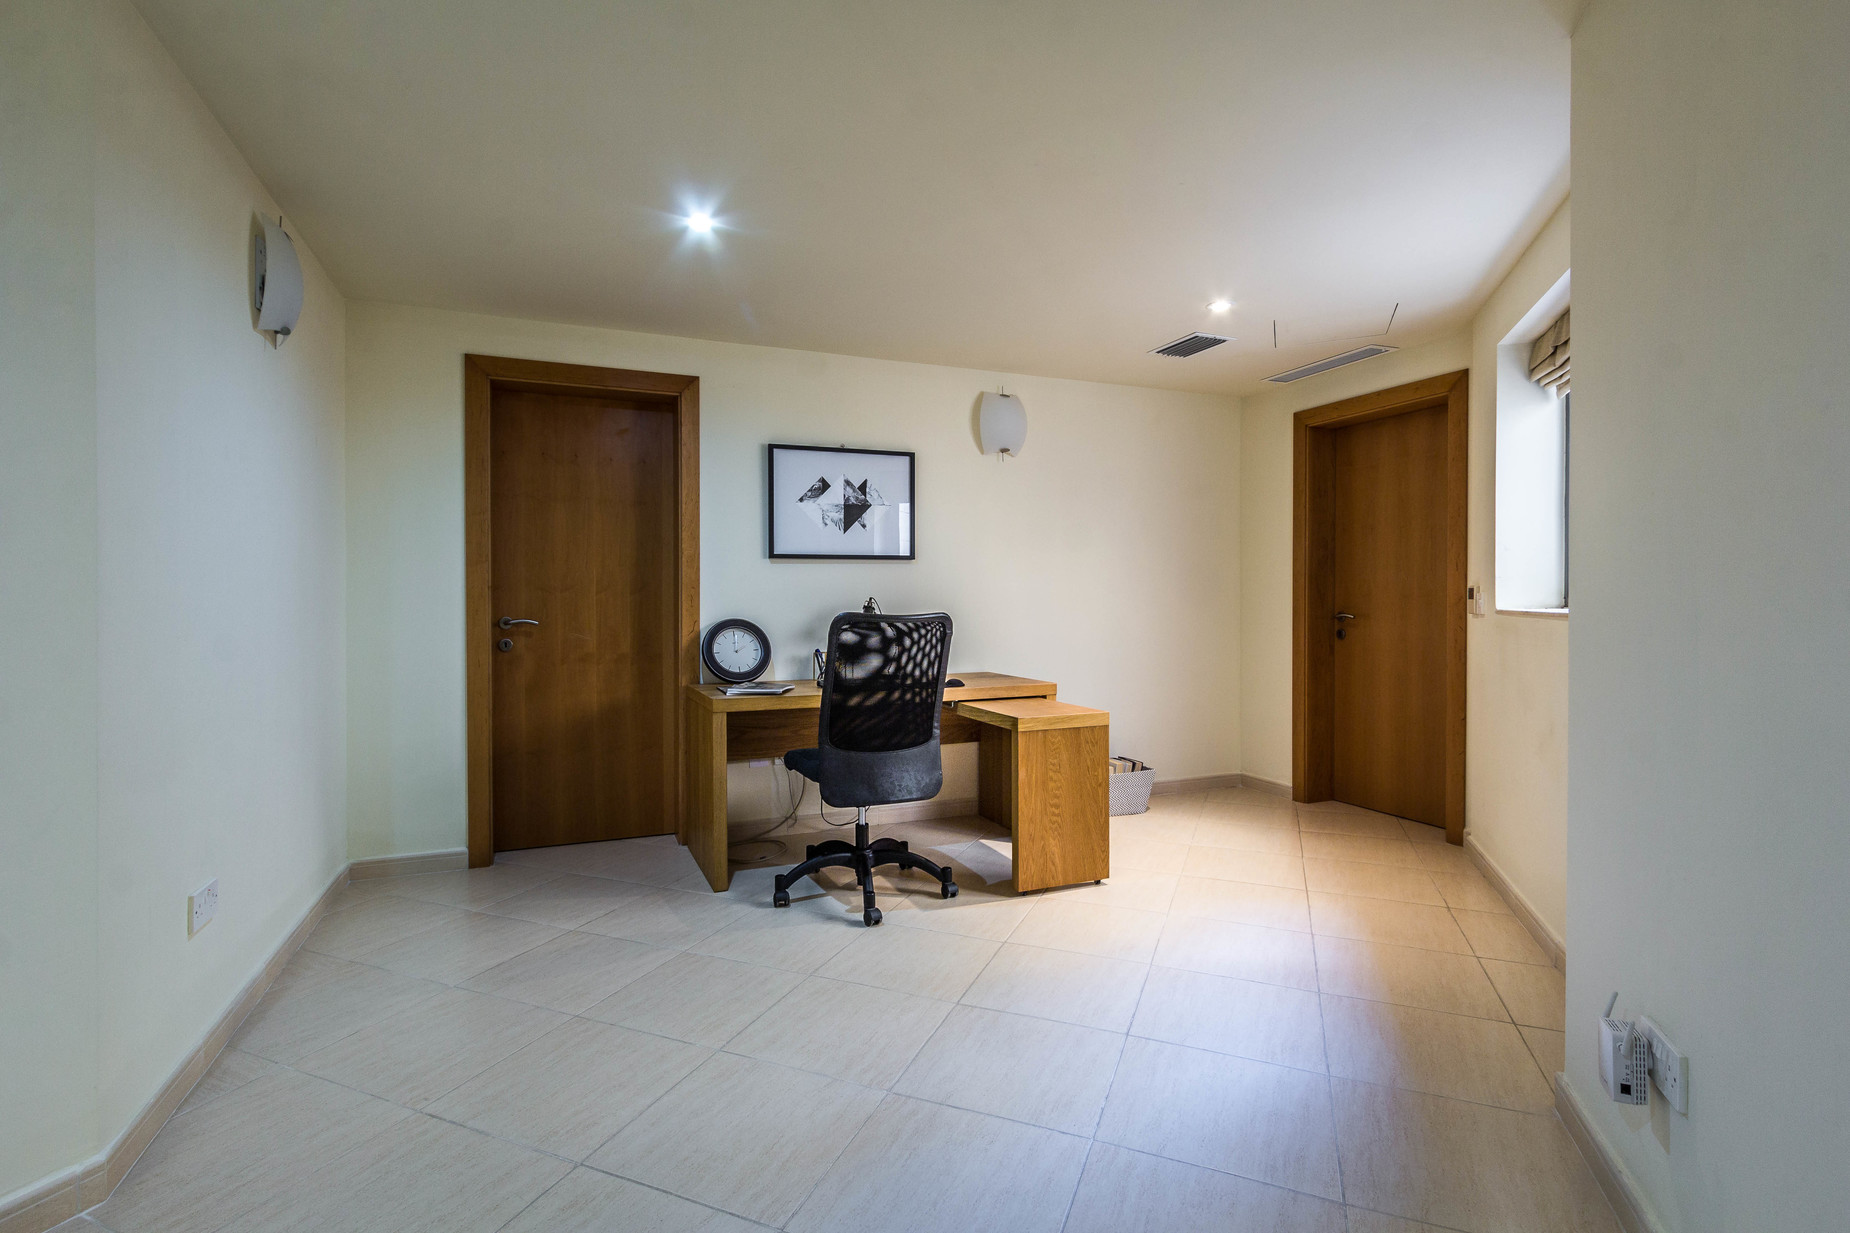 4 bed Apartment For Sale in Mellieha, Mellieha - thumb 16